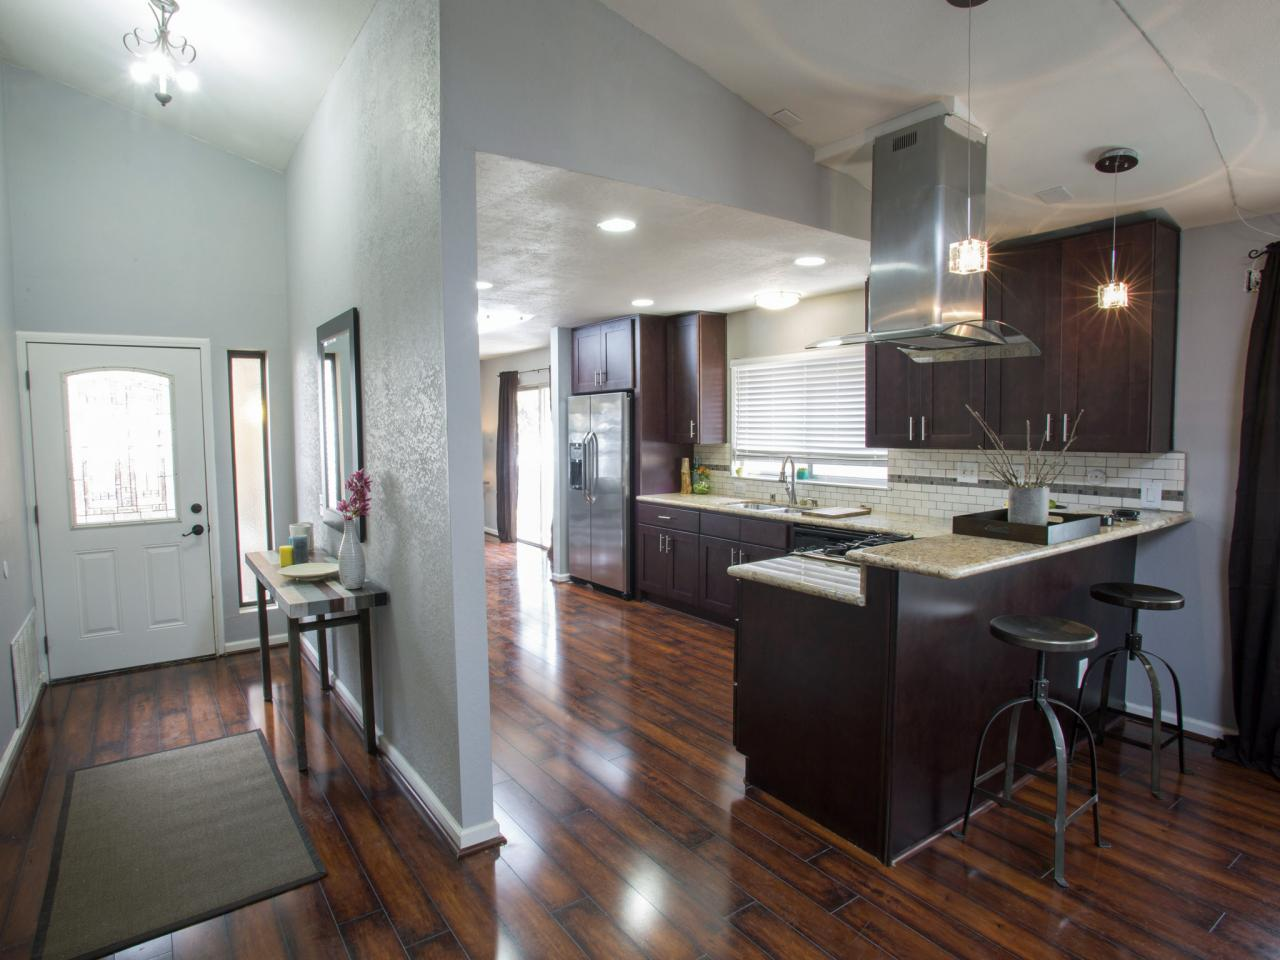 laminate flooring kitchen cabinets the pros and cons of laminate flooring AWAAHFV